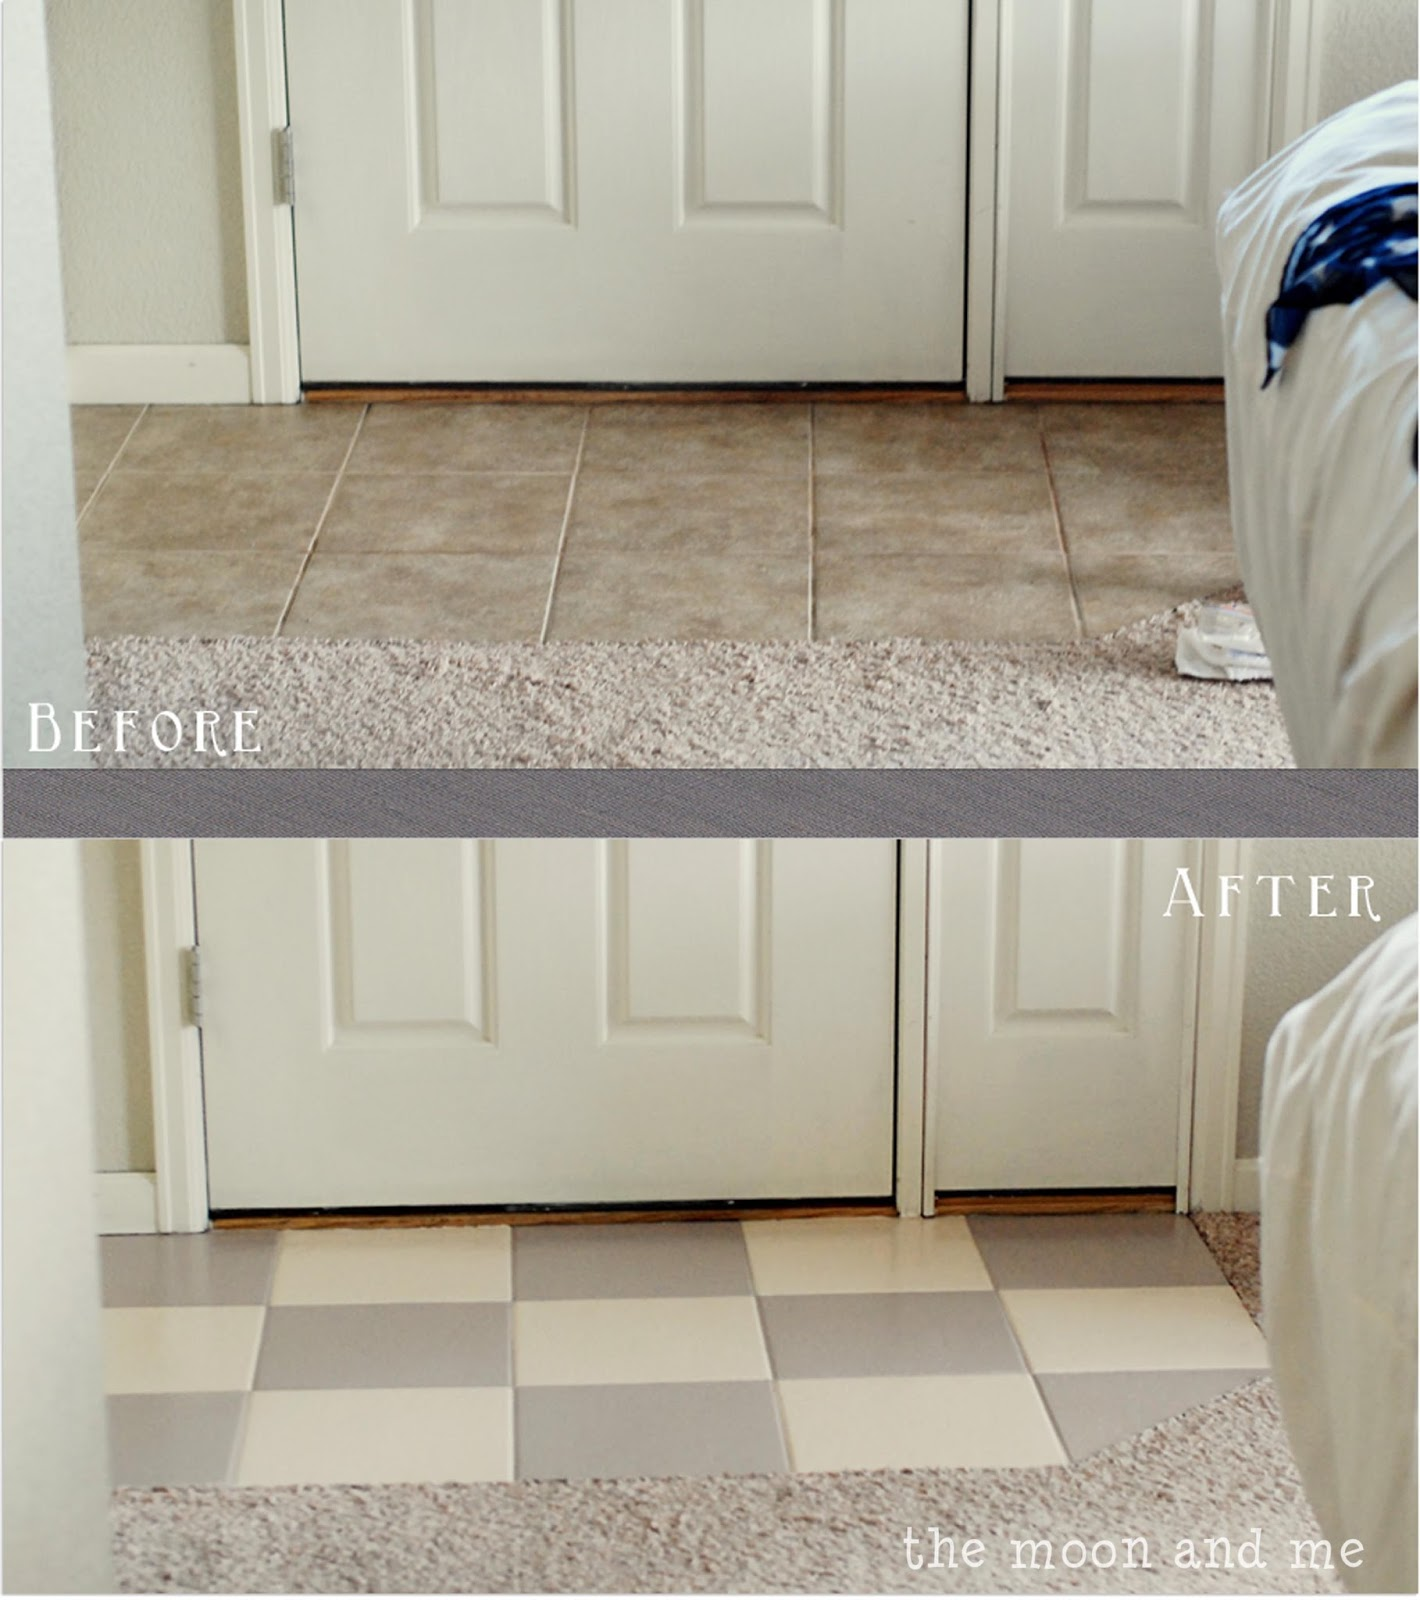 The moon and me painting a tile floor tips and grumbles for How to paint tiles bathroom